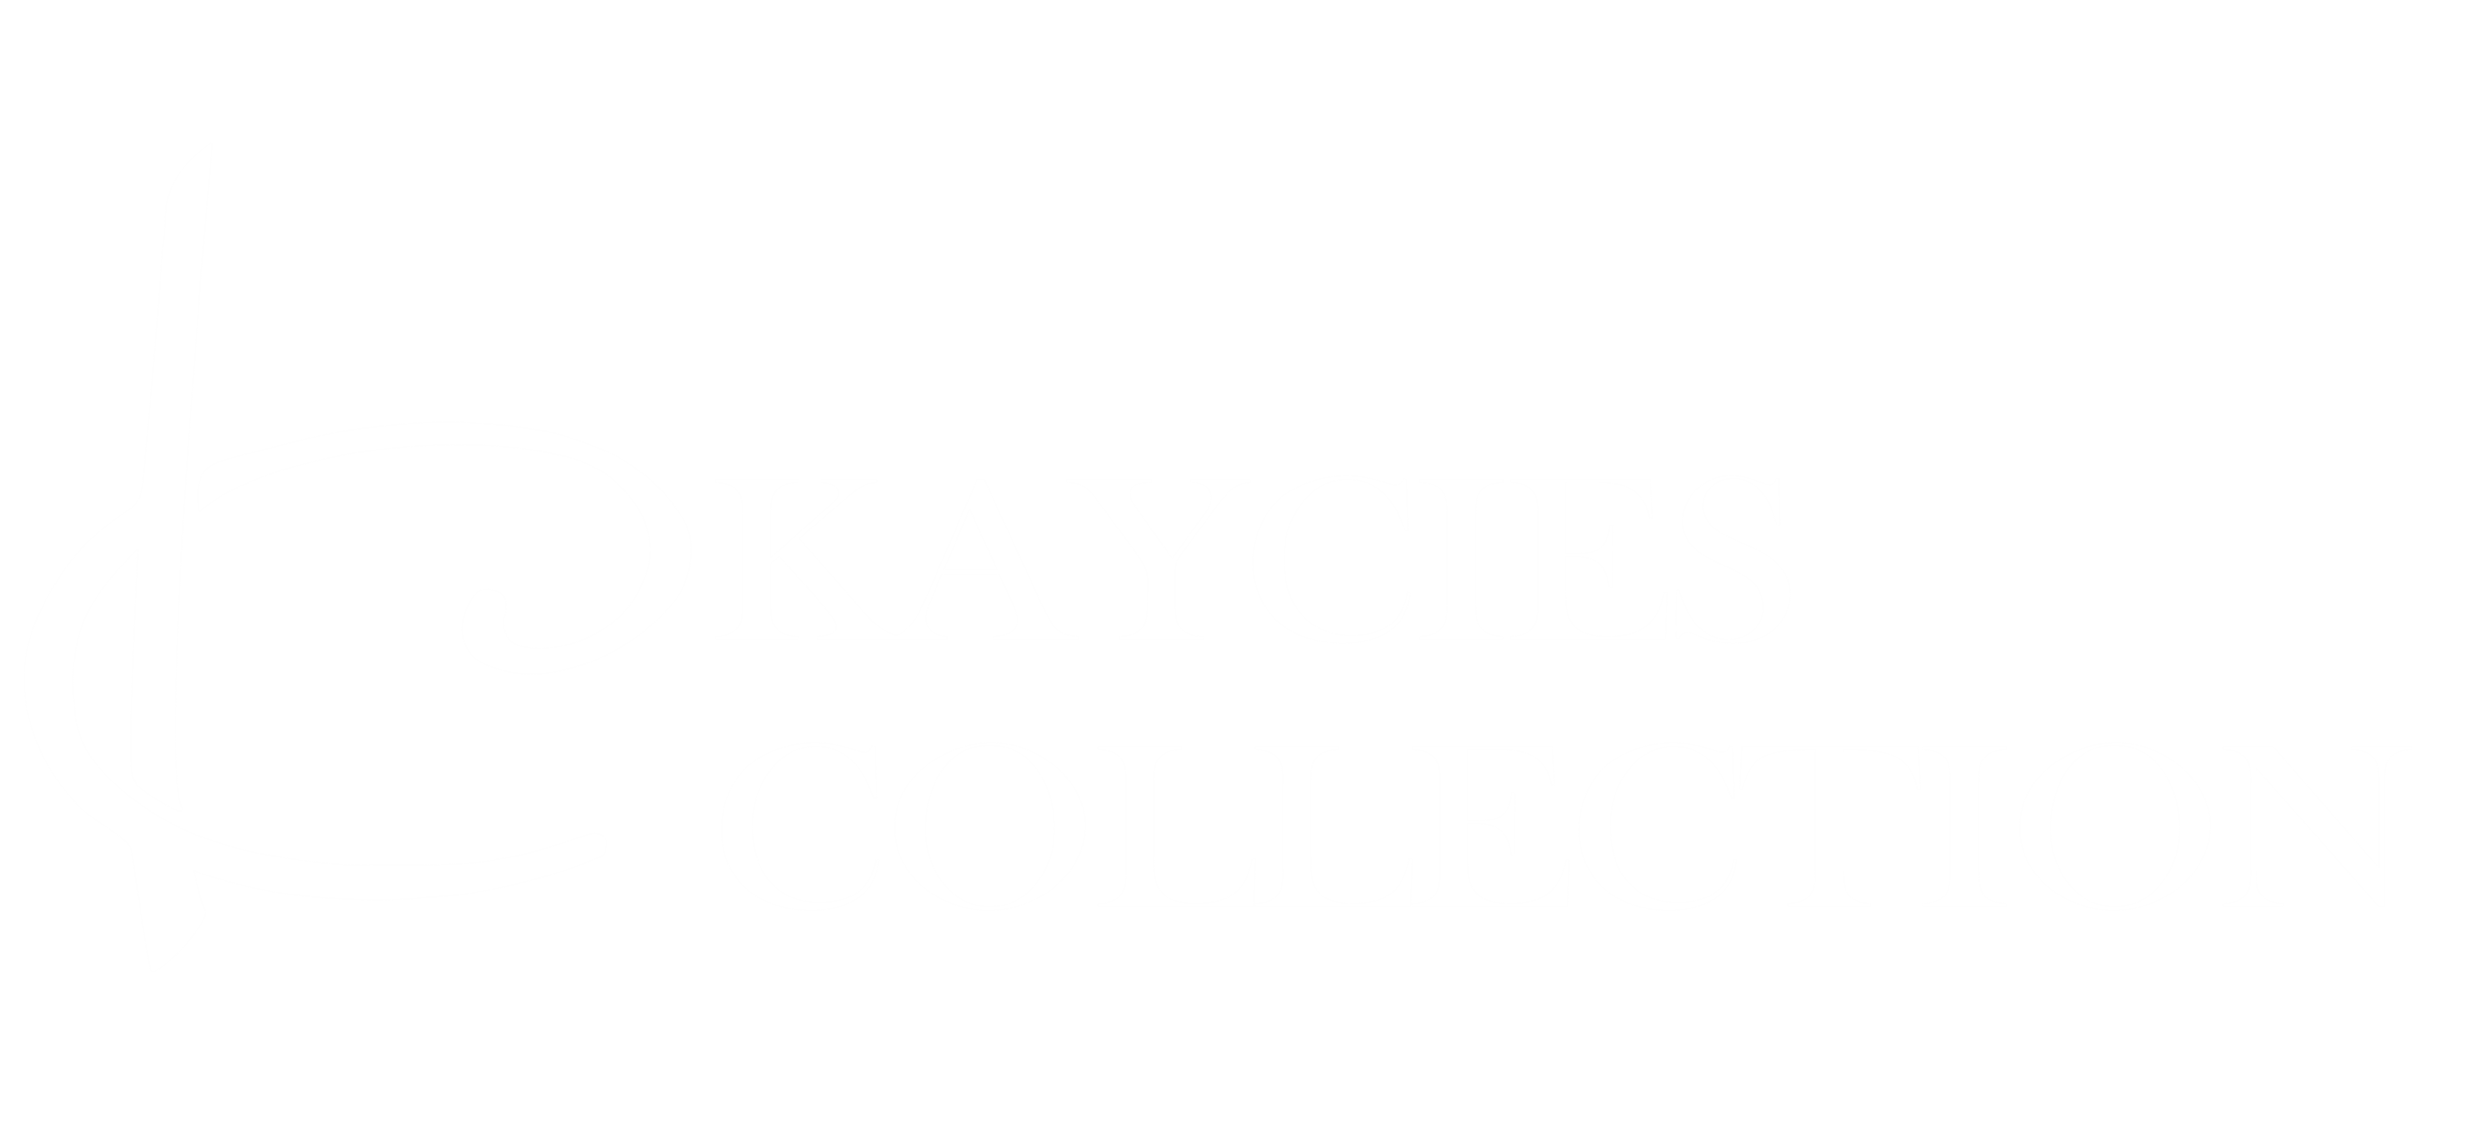 Kaycies Collection